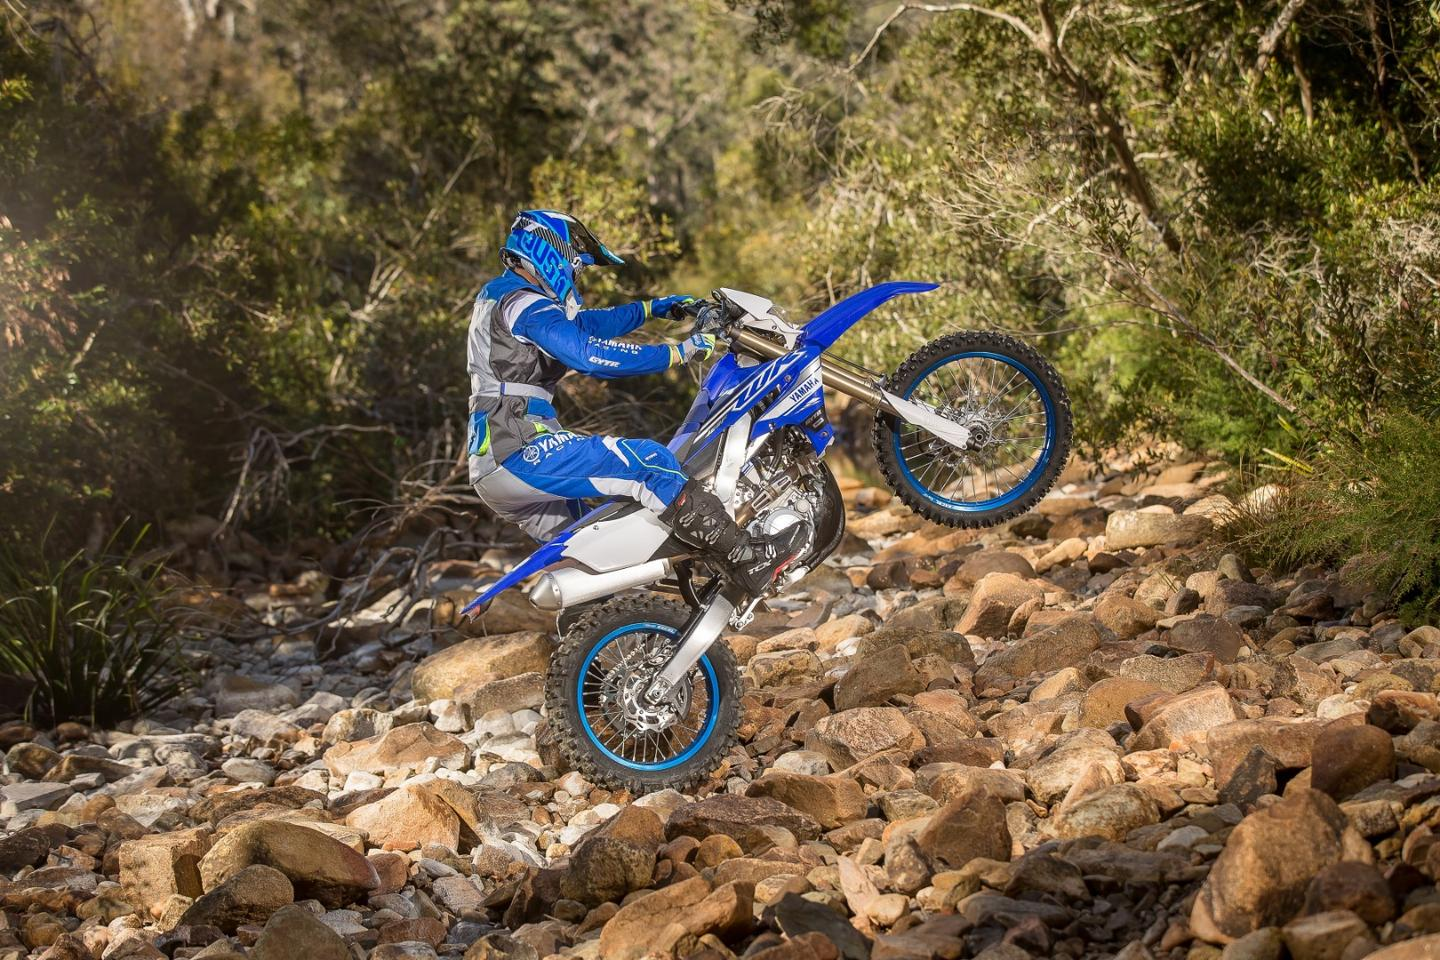 The 2019 Yamaha WR450F in action